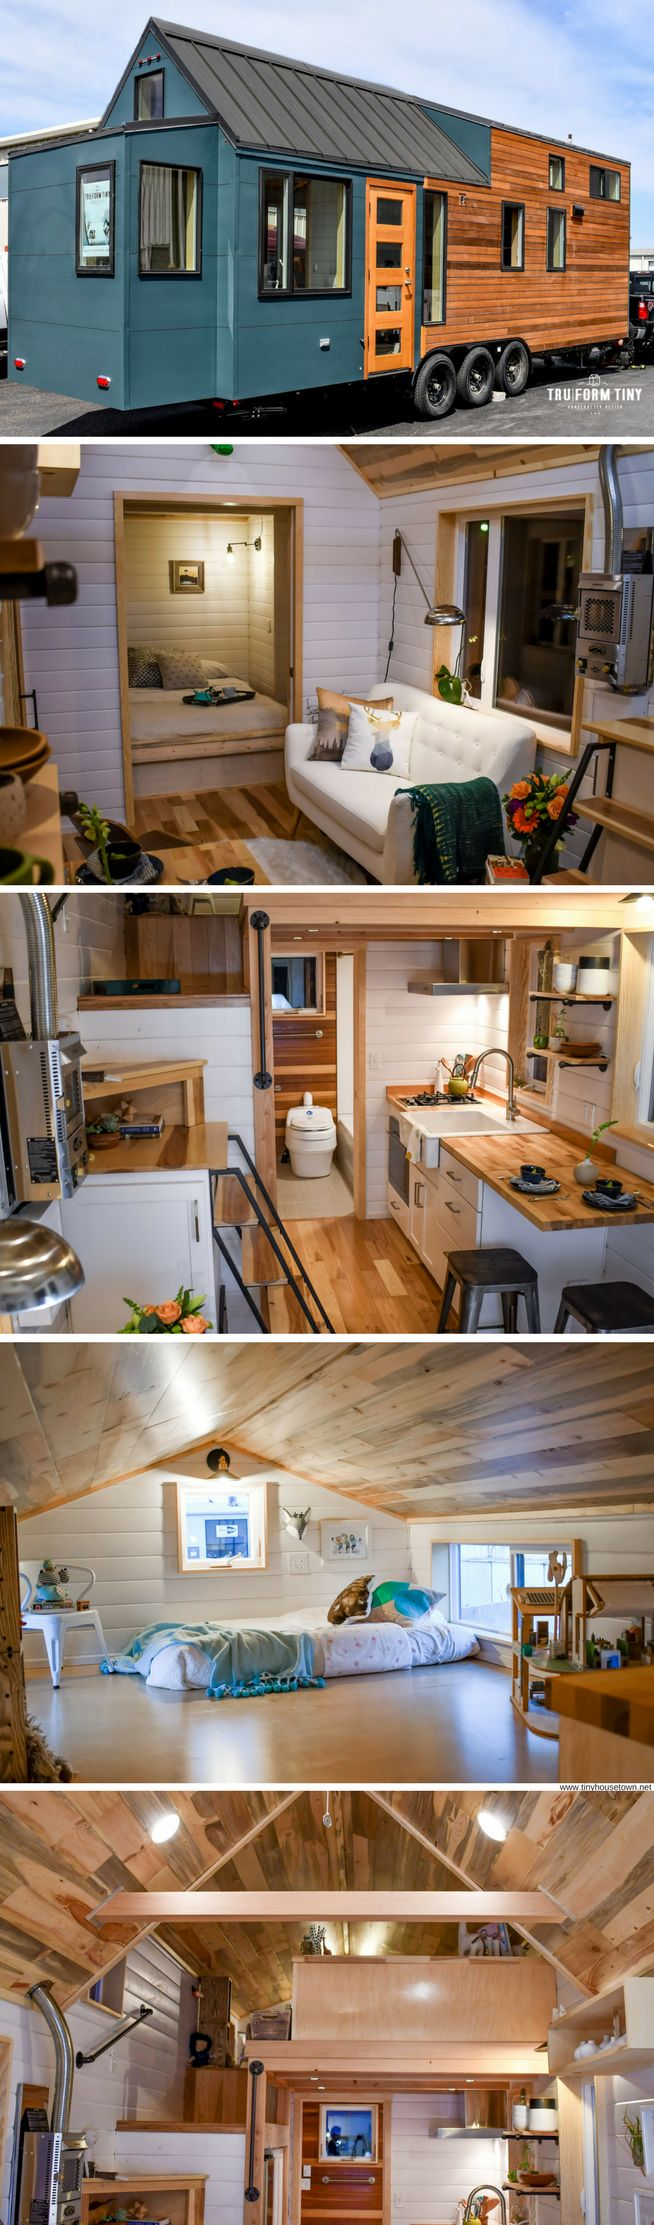 The Payette: a two bedroom tiny home with an upstairs desk!